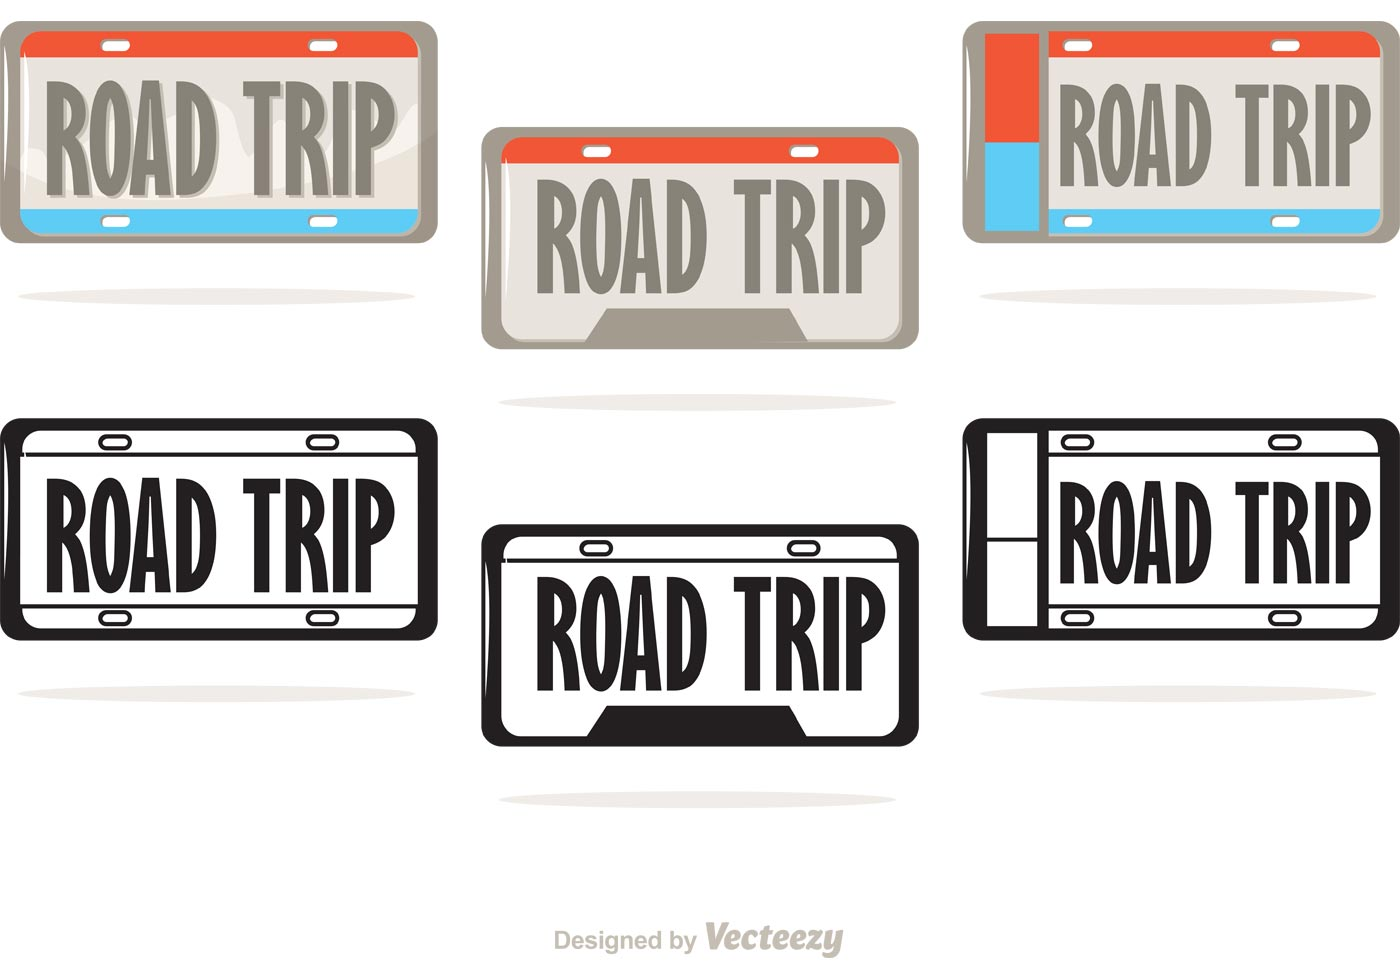 Customized License Plates >> License Plate Vectors - Download Free Vector Art, Stock Graphics & Images